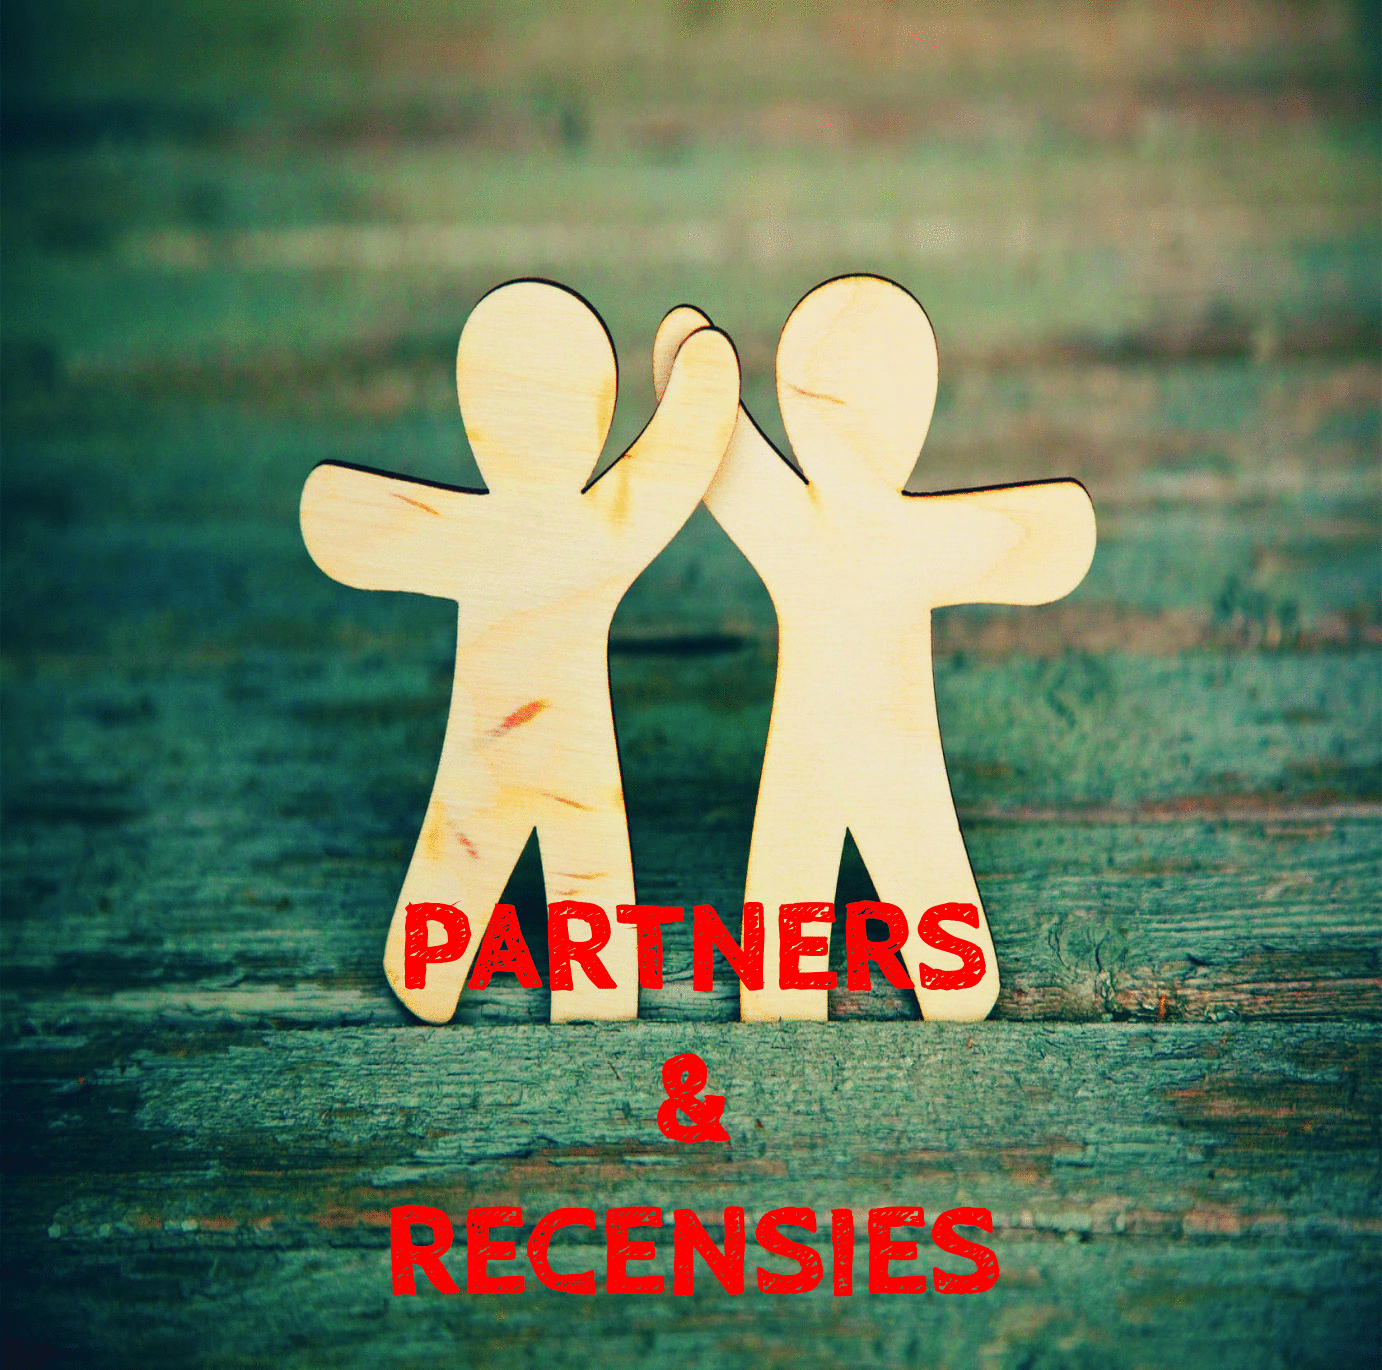 PARTNERS__RECENSIES